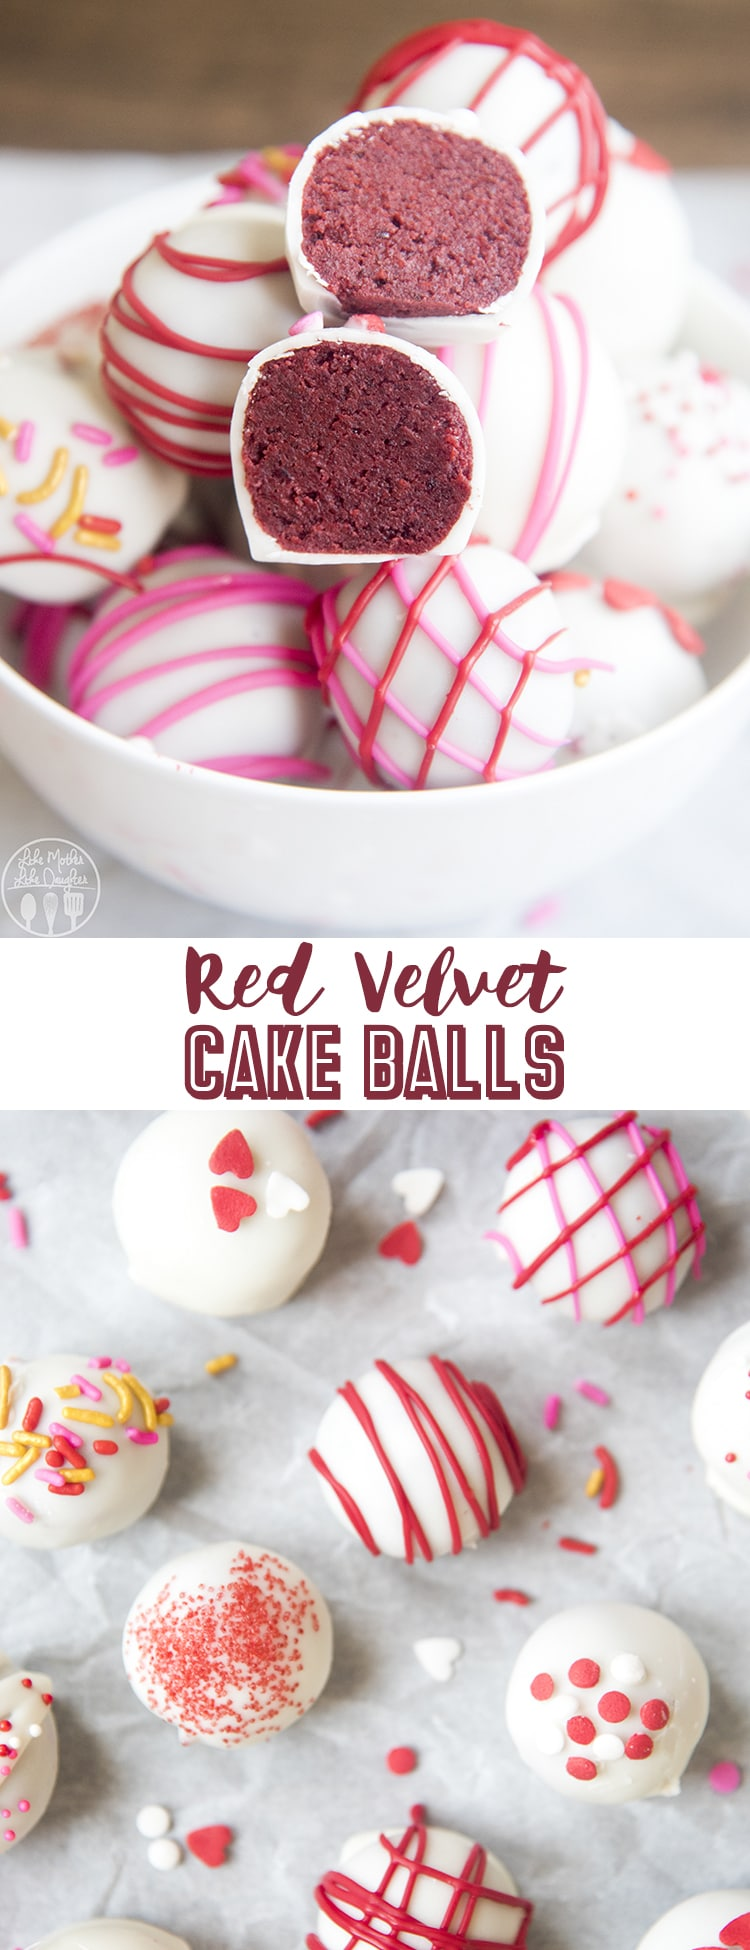 Red Velvet Cake Balls are easy to make with red velvet cake and your favorite cream cheese frosting. Dip them in white chocolate for a delicious bite sized treat!